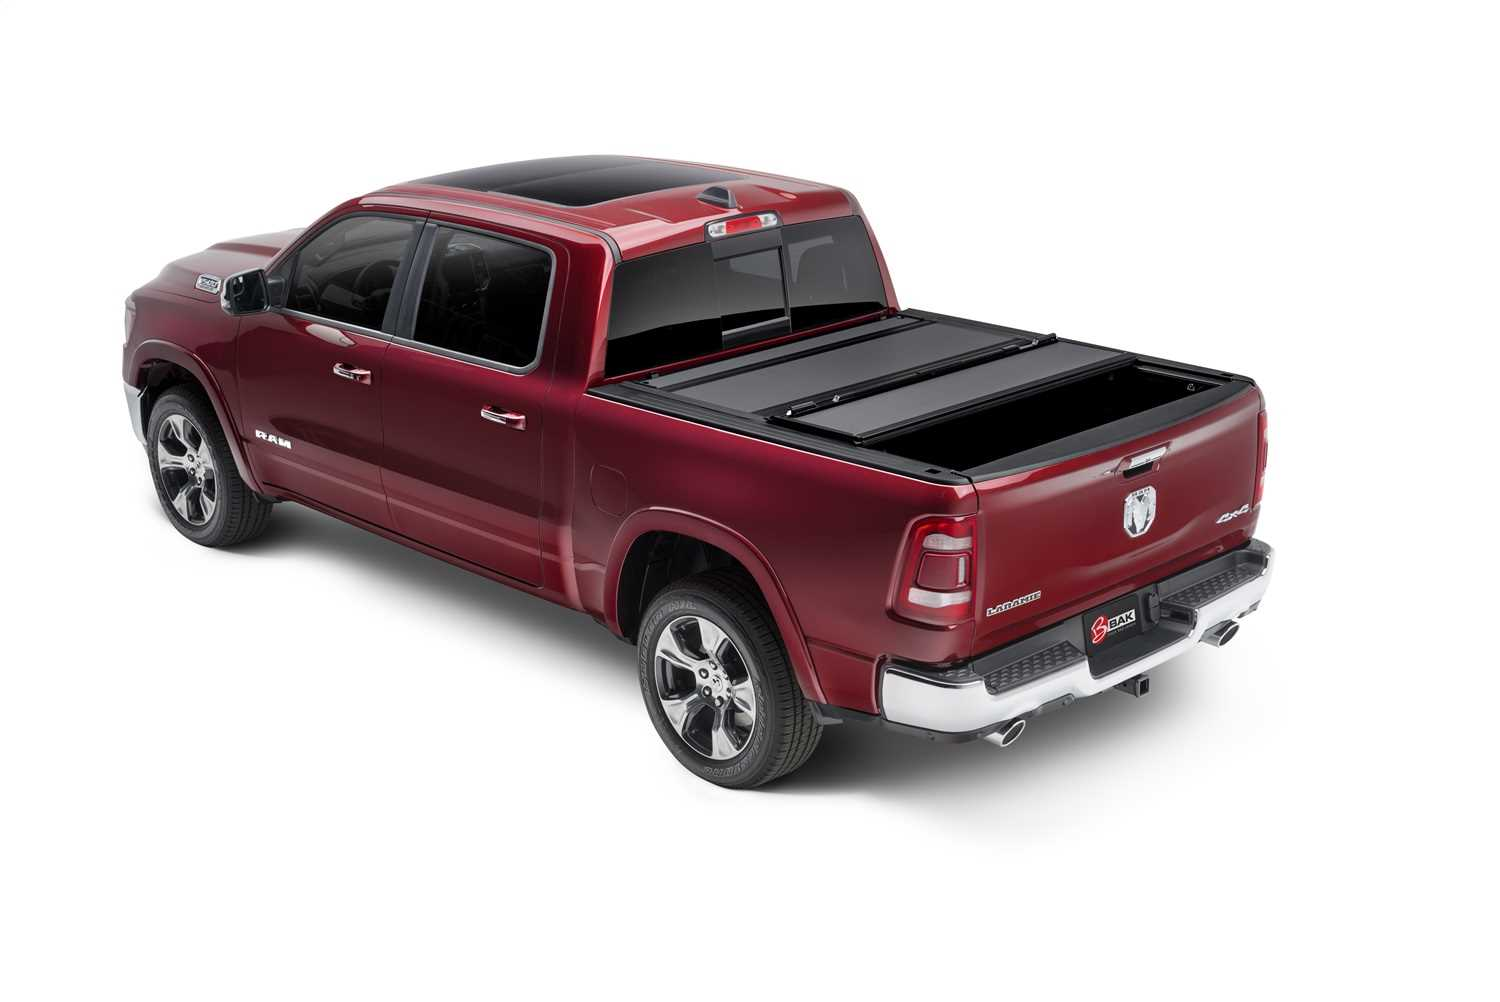 448227 Bak Industries BAKFlip MX4 Hard Folding Truck Bed Cover